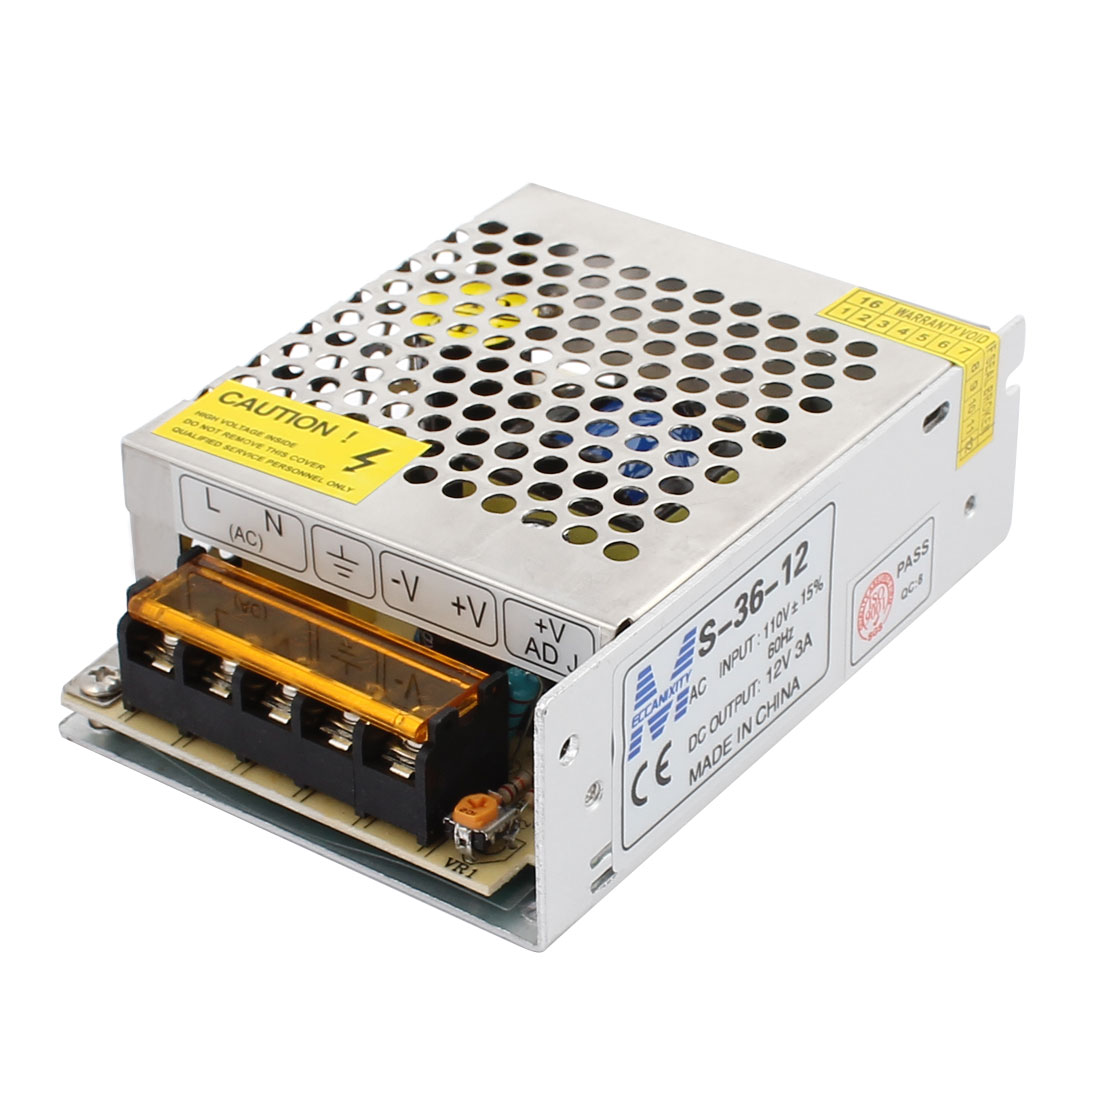 AC 110V to DC 12V 3A LED Regulated Switch Power Supply Driver Adapter